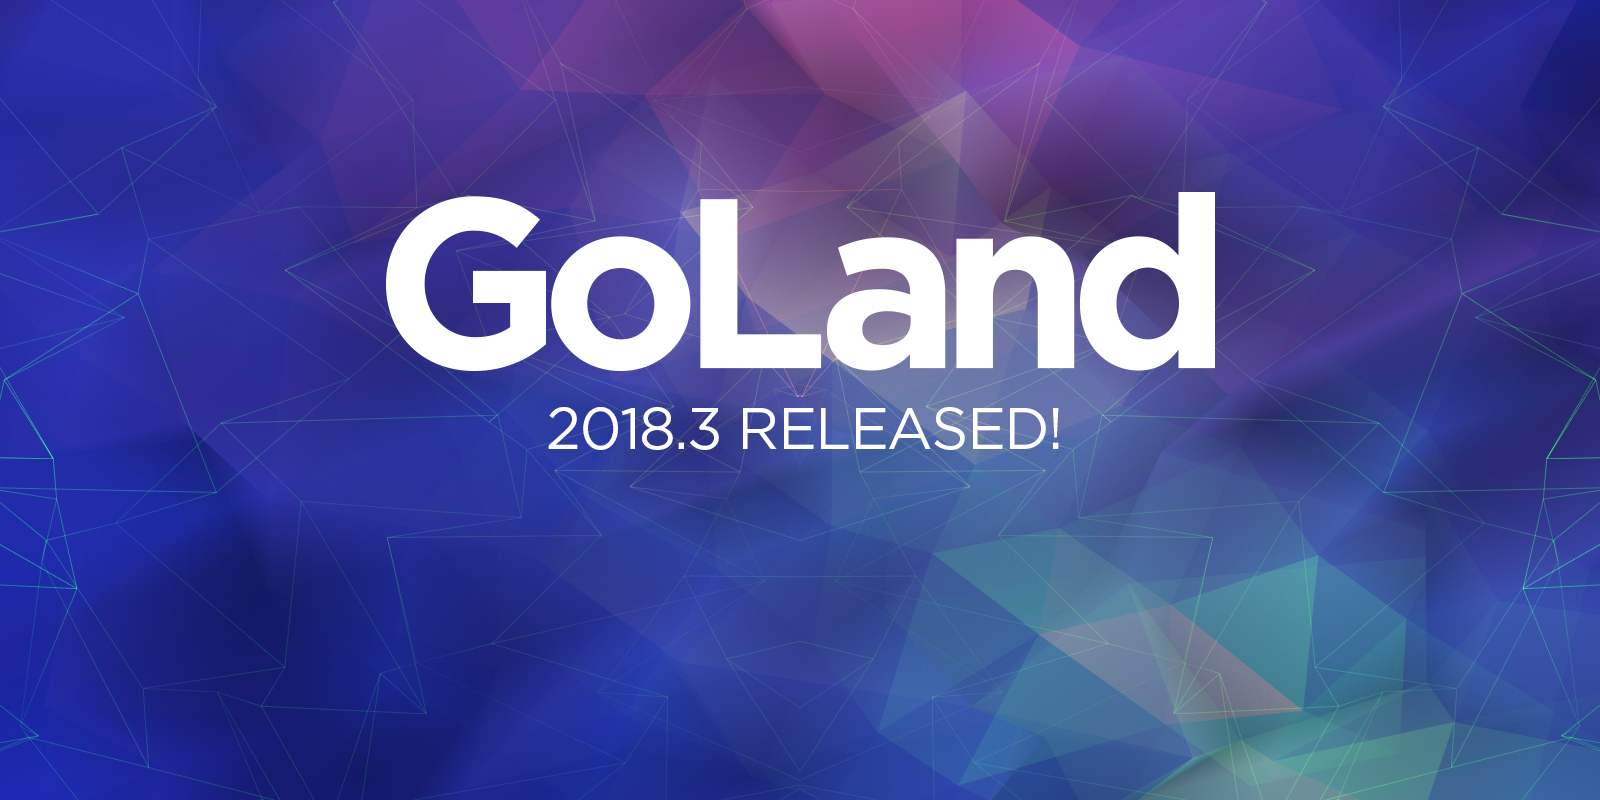 What's new in GoLand 2018.3